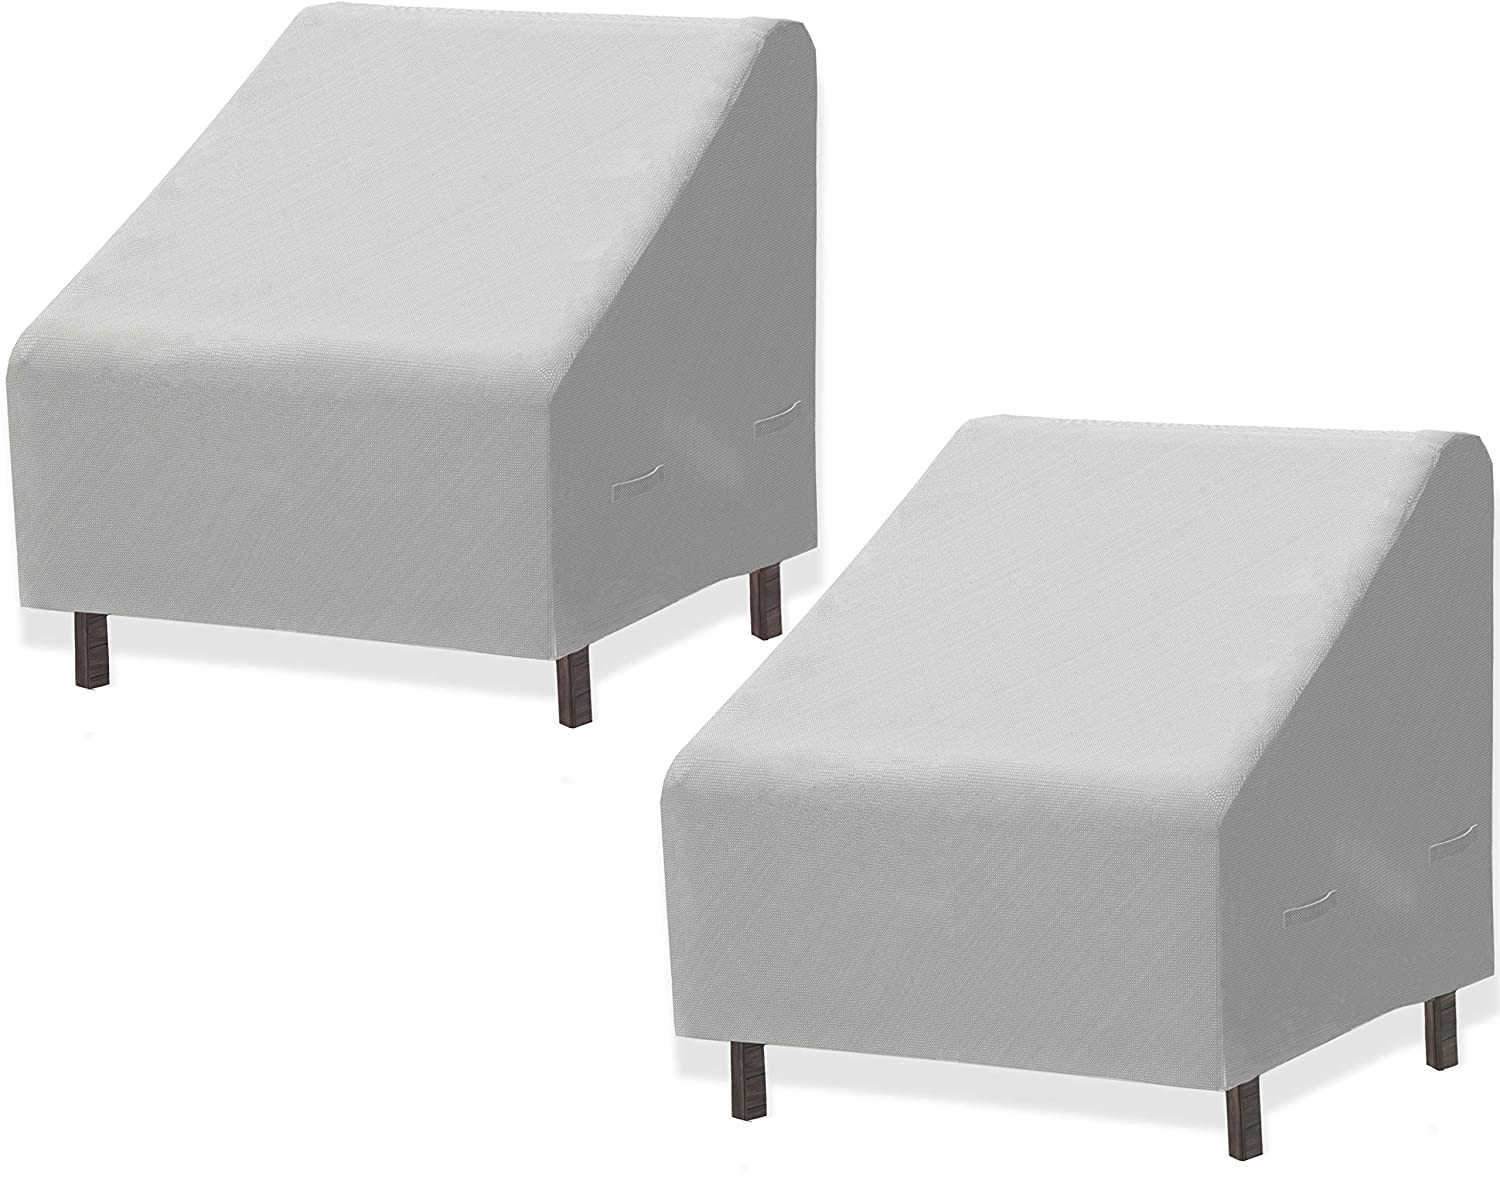 2 PK - SimpleHouseware Patio Lounge Deep-Seat Sofa Cover, 32 x 39 x 29 Inches